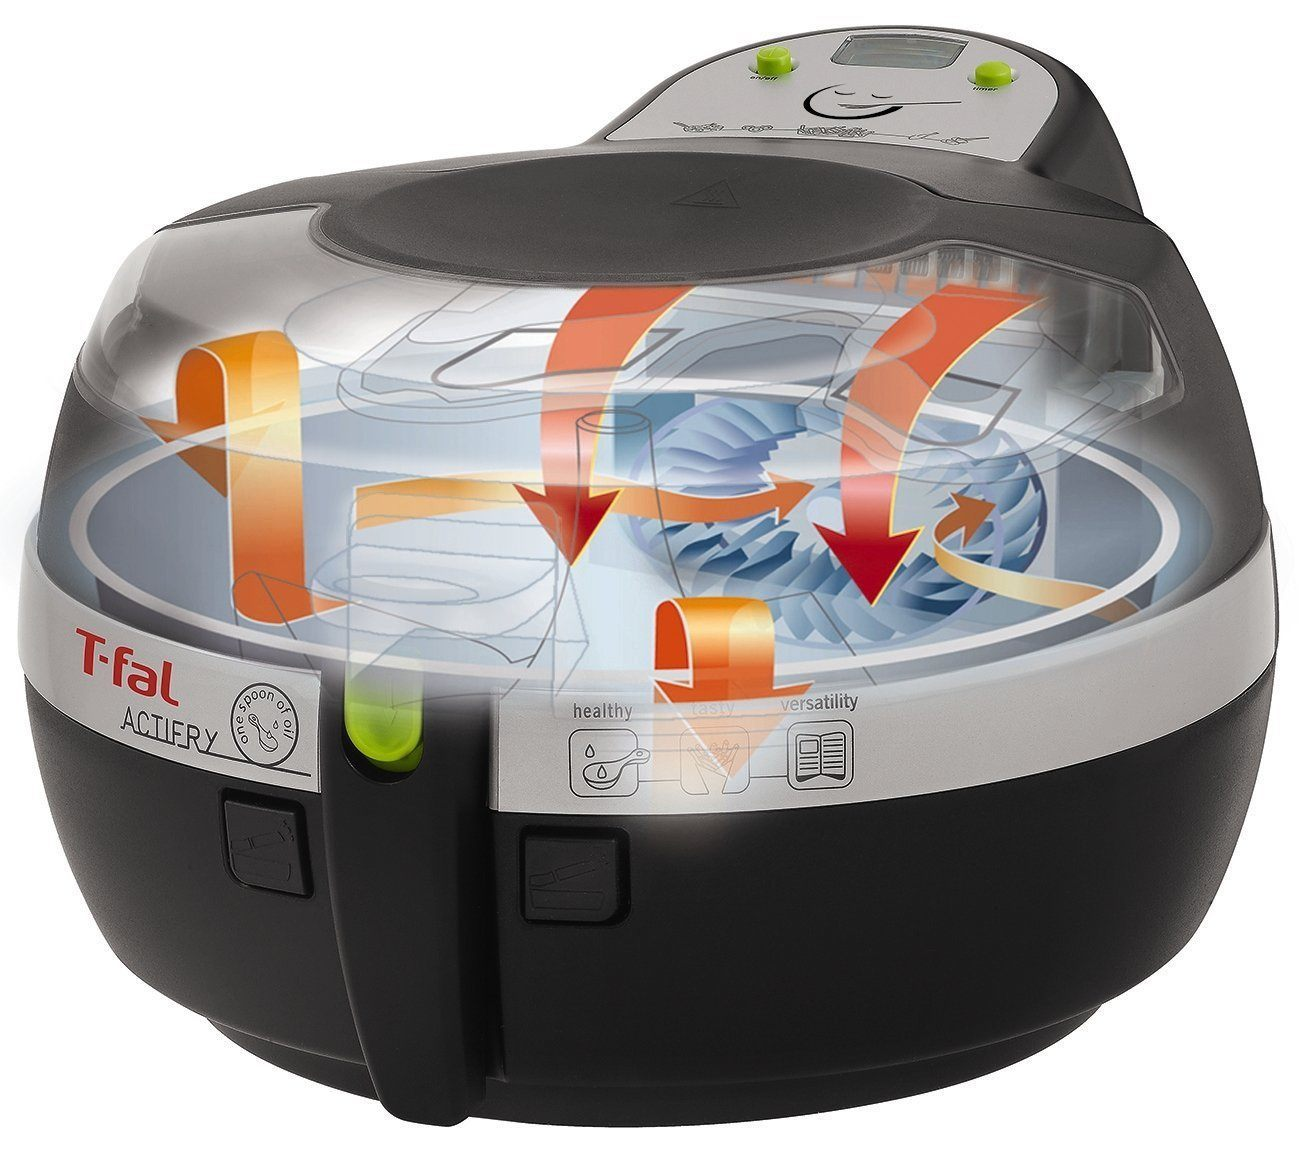 t-fal-actifry-how-it-works